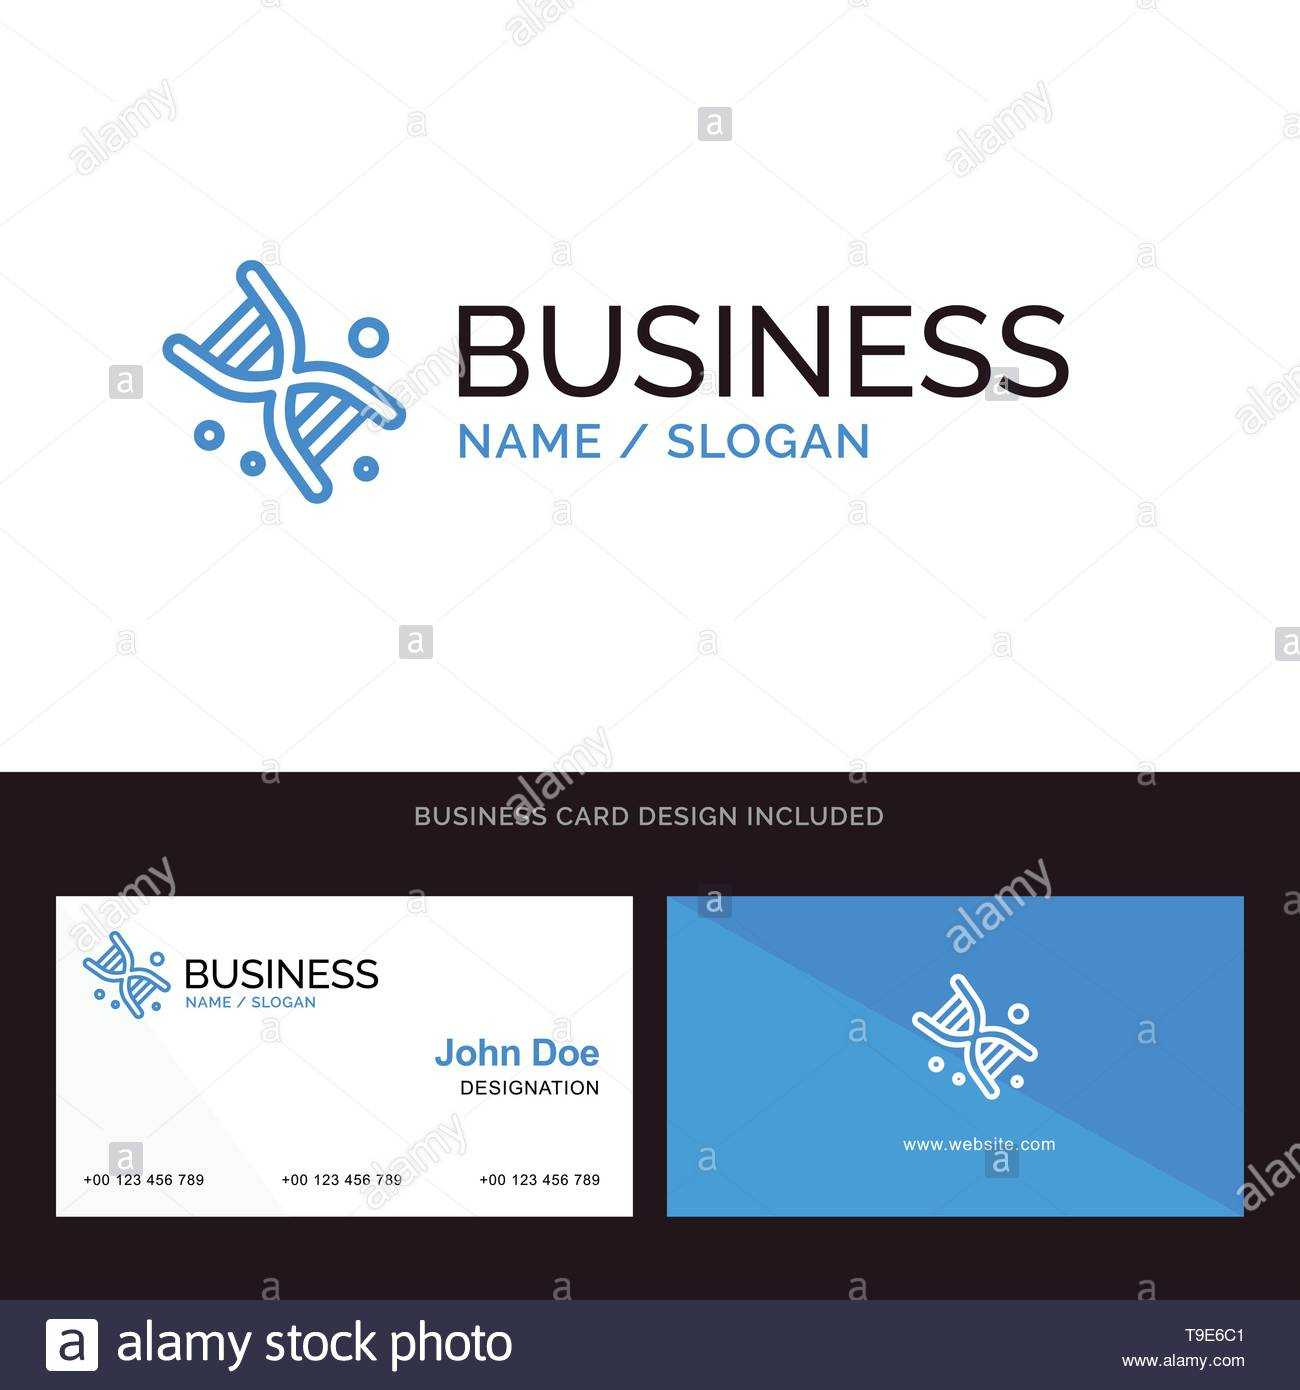 Bio, Dna, Genetics, Technology Blue Business Logo And in Bio Card Template